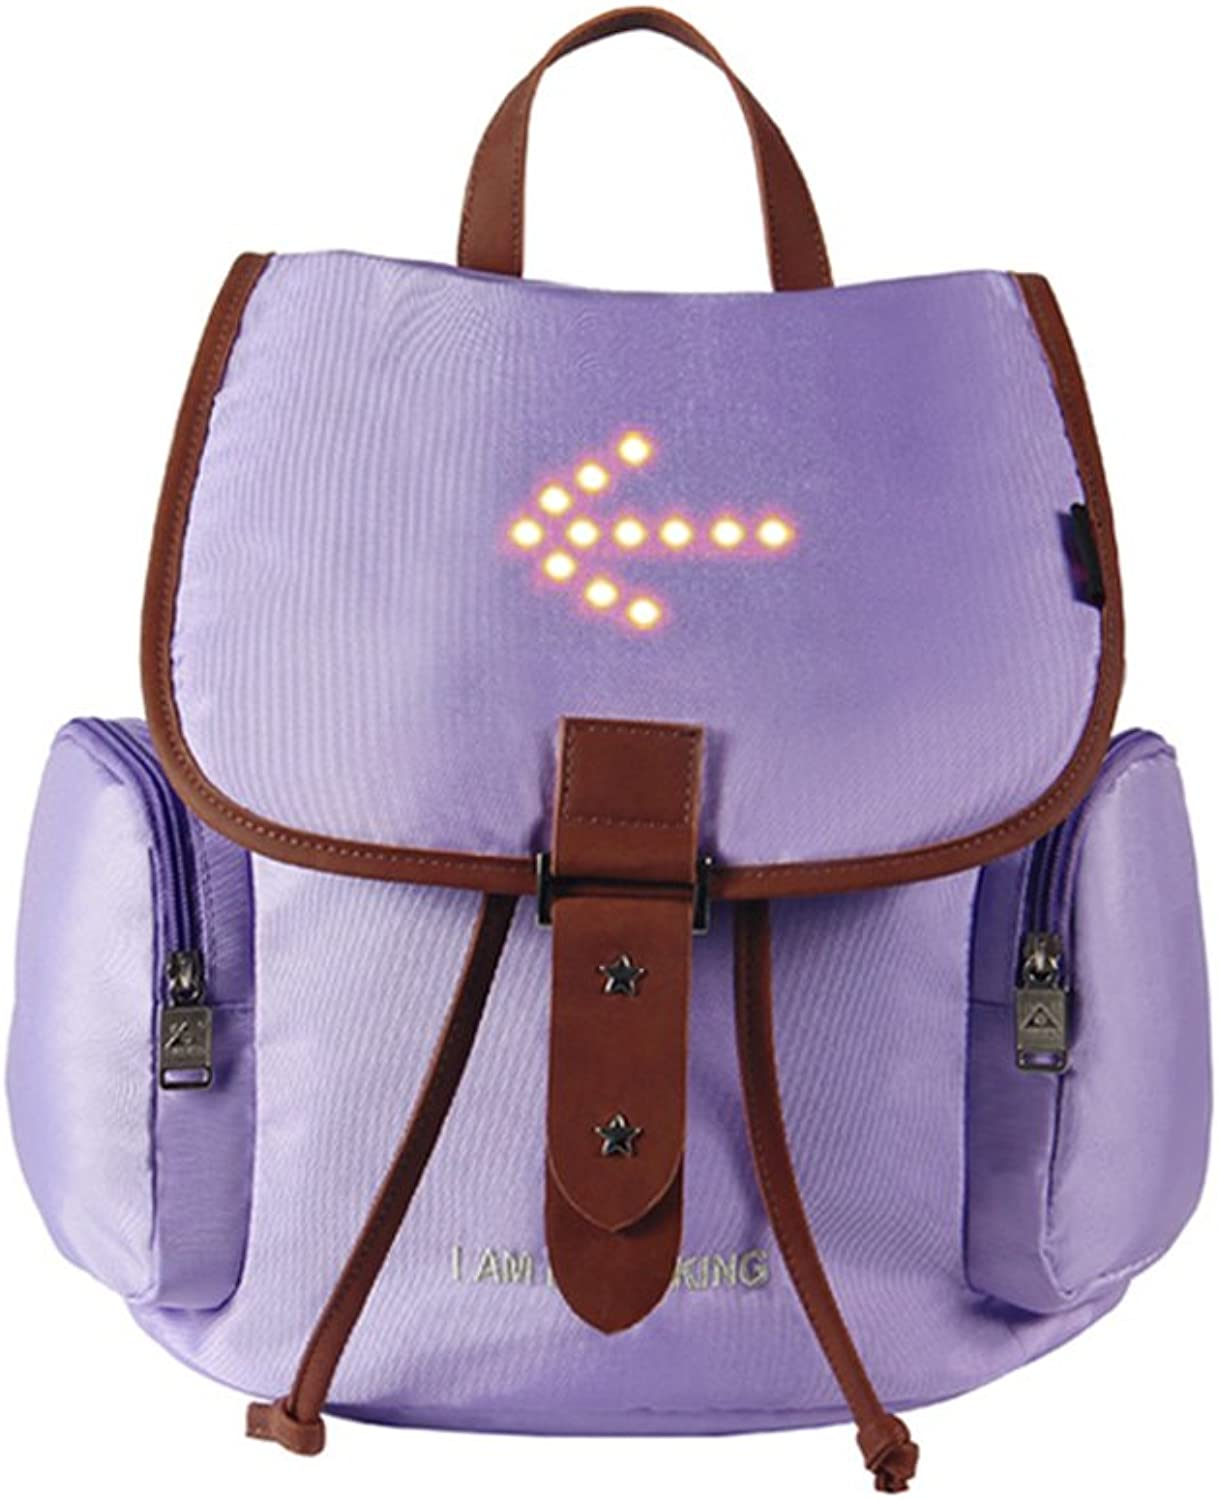 Bicycle Backpack Cycling Bags with LED Warning Light Multifunction Casual Rucksack Women's Bag